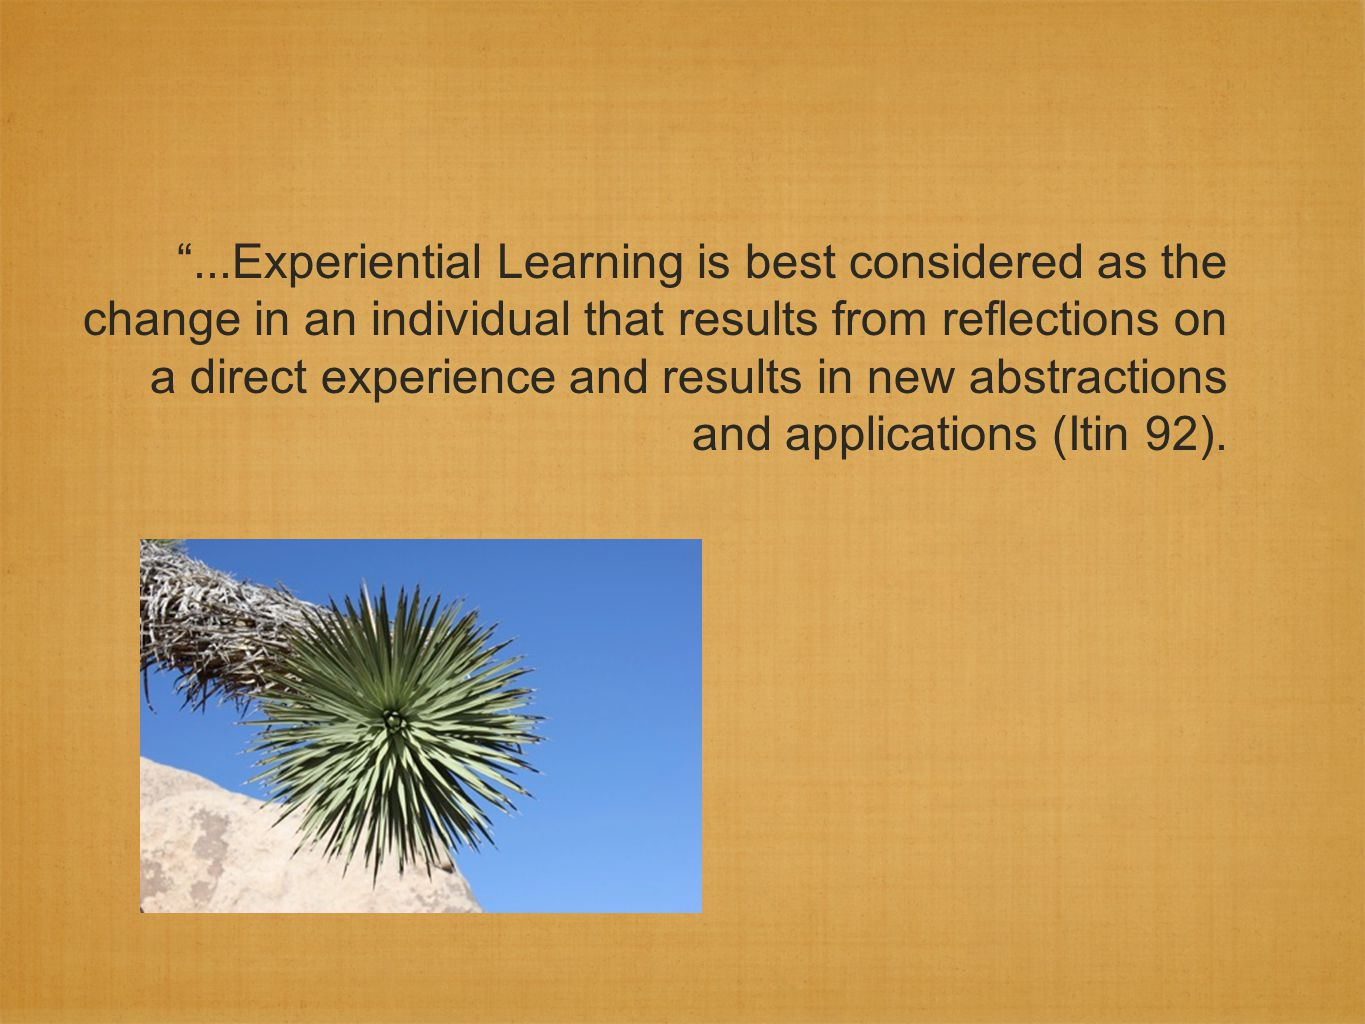 Experiential Education must include or make clear the transactive component between teacher and learner which is absent from the definition of experiential learning (Itin 92).